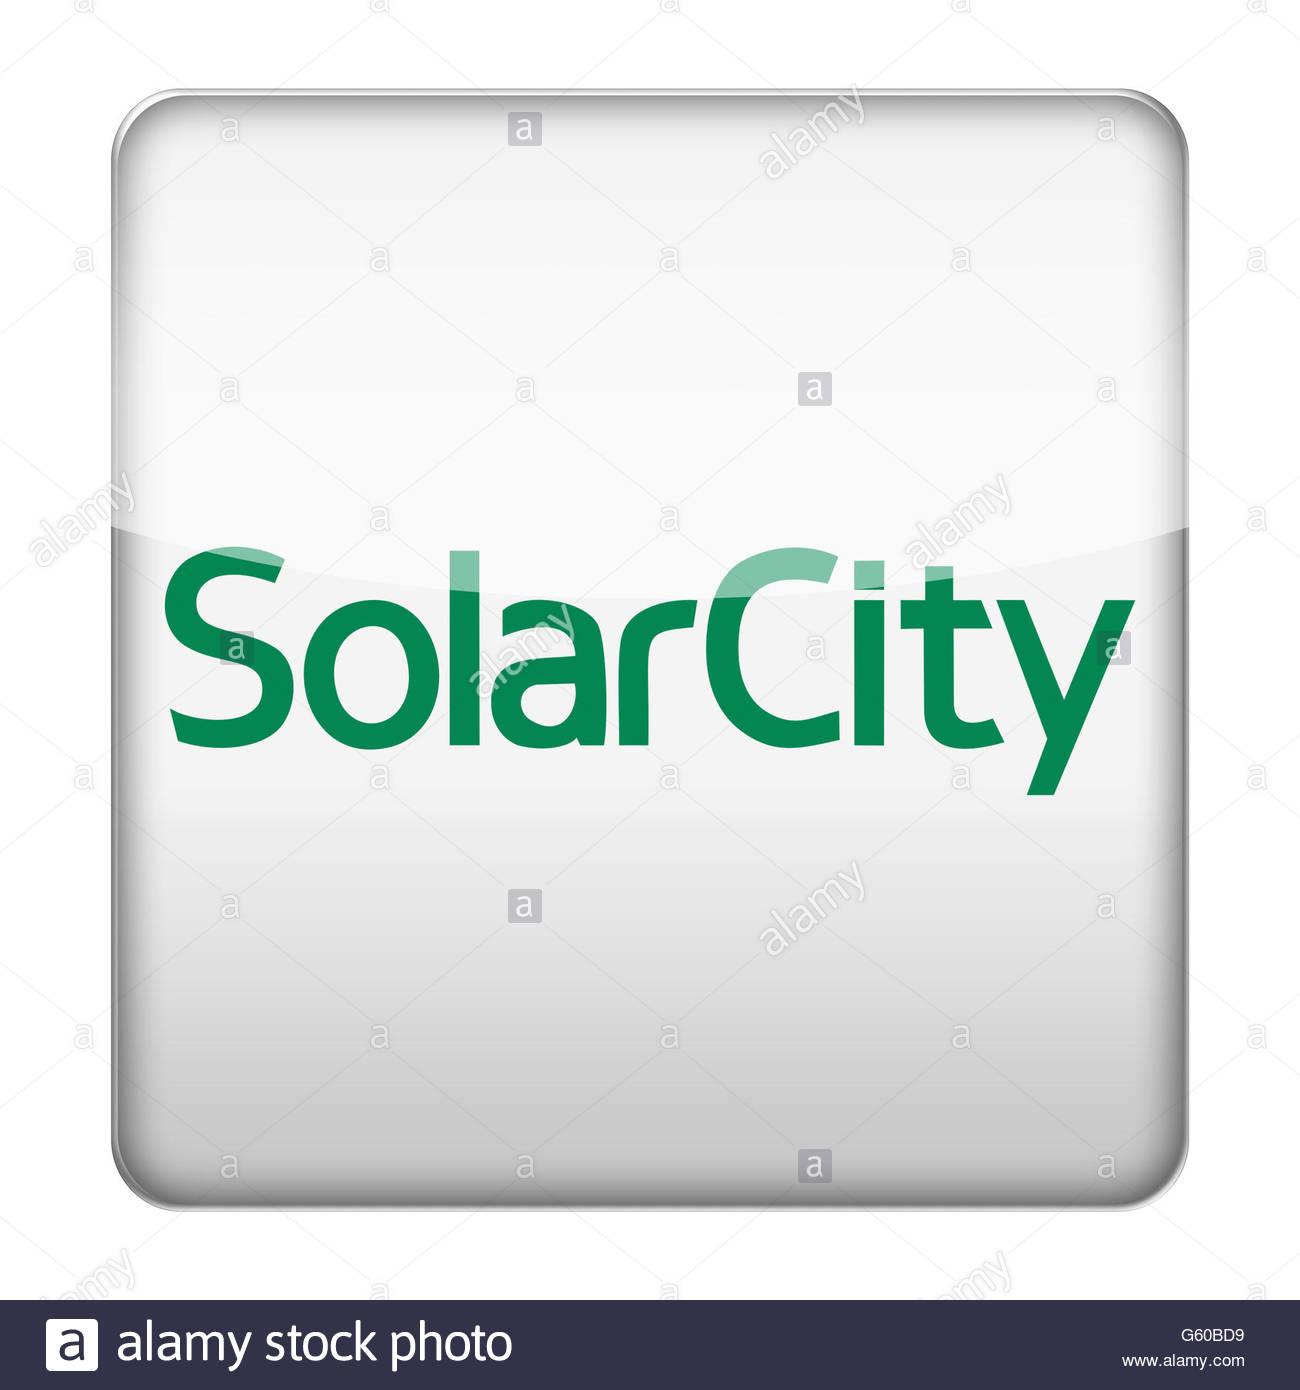 Solarcity logo icon stock photo royalty free image 106959141 alamy solarcity logo icon buycottarizona